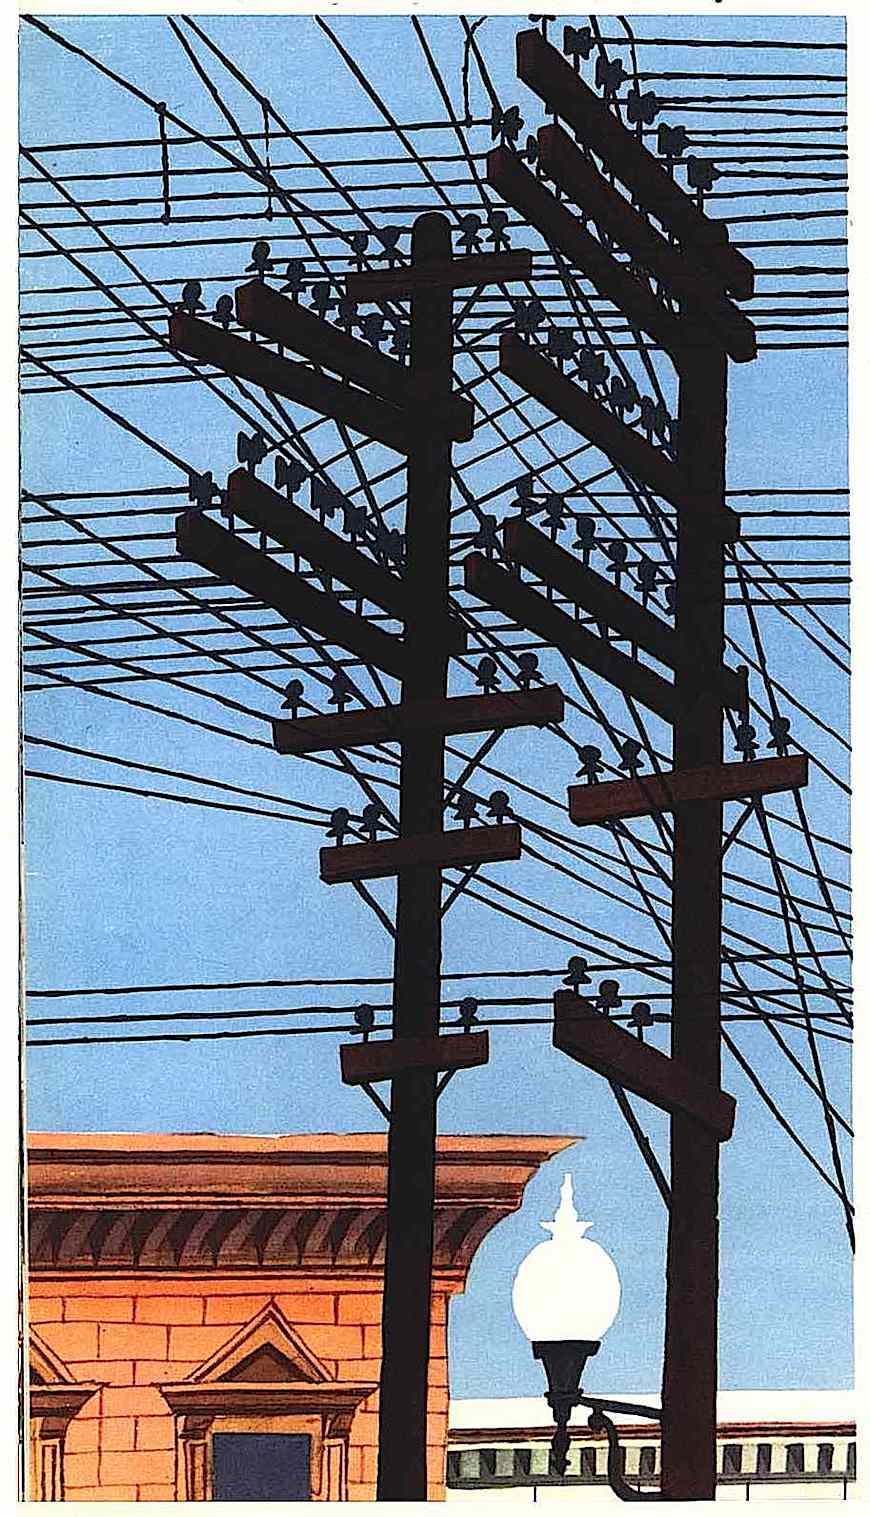 a Miroslav Sasek children's book illustration of telephone poles and wires in silhouette